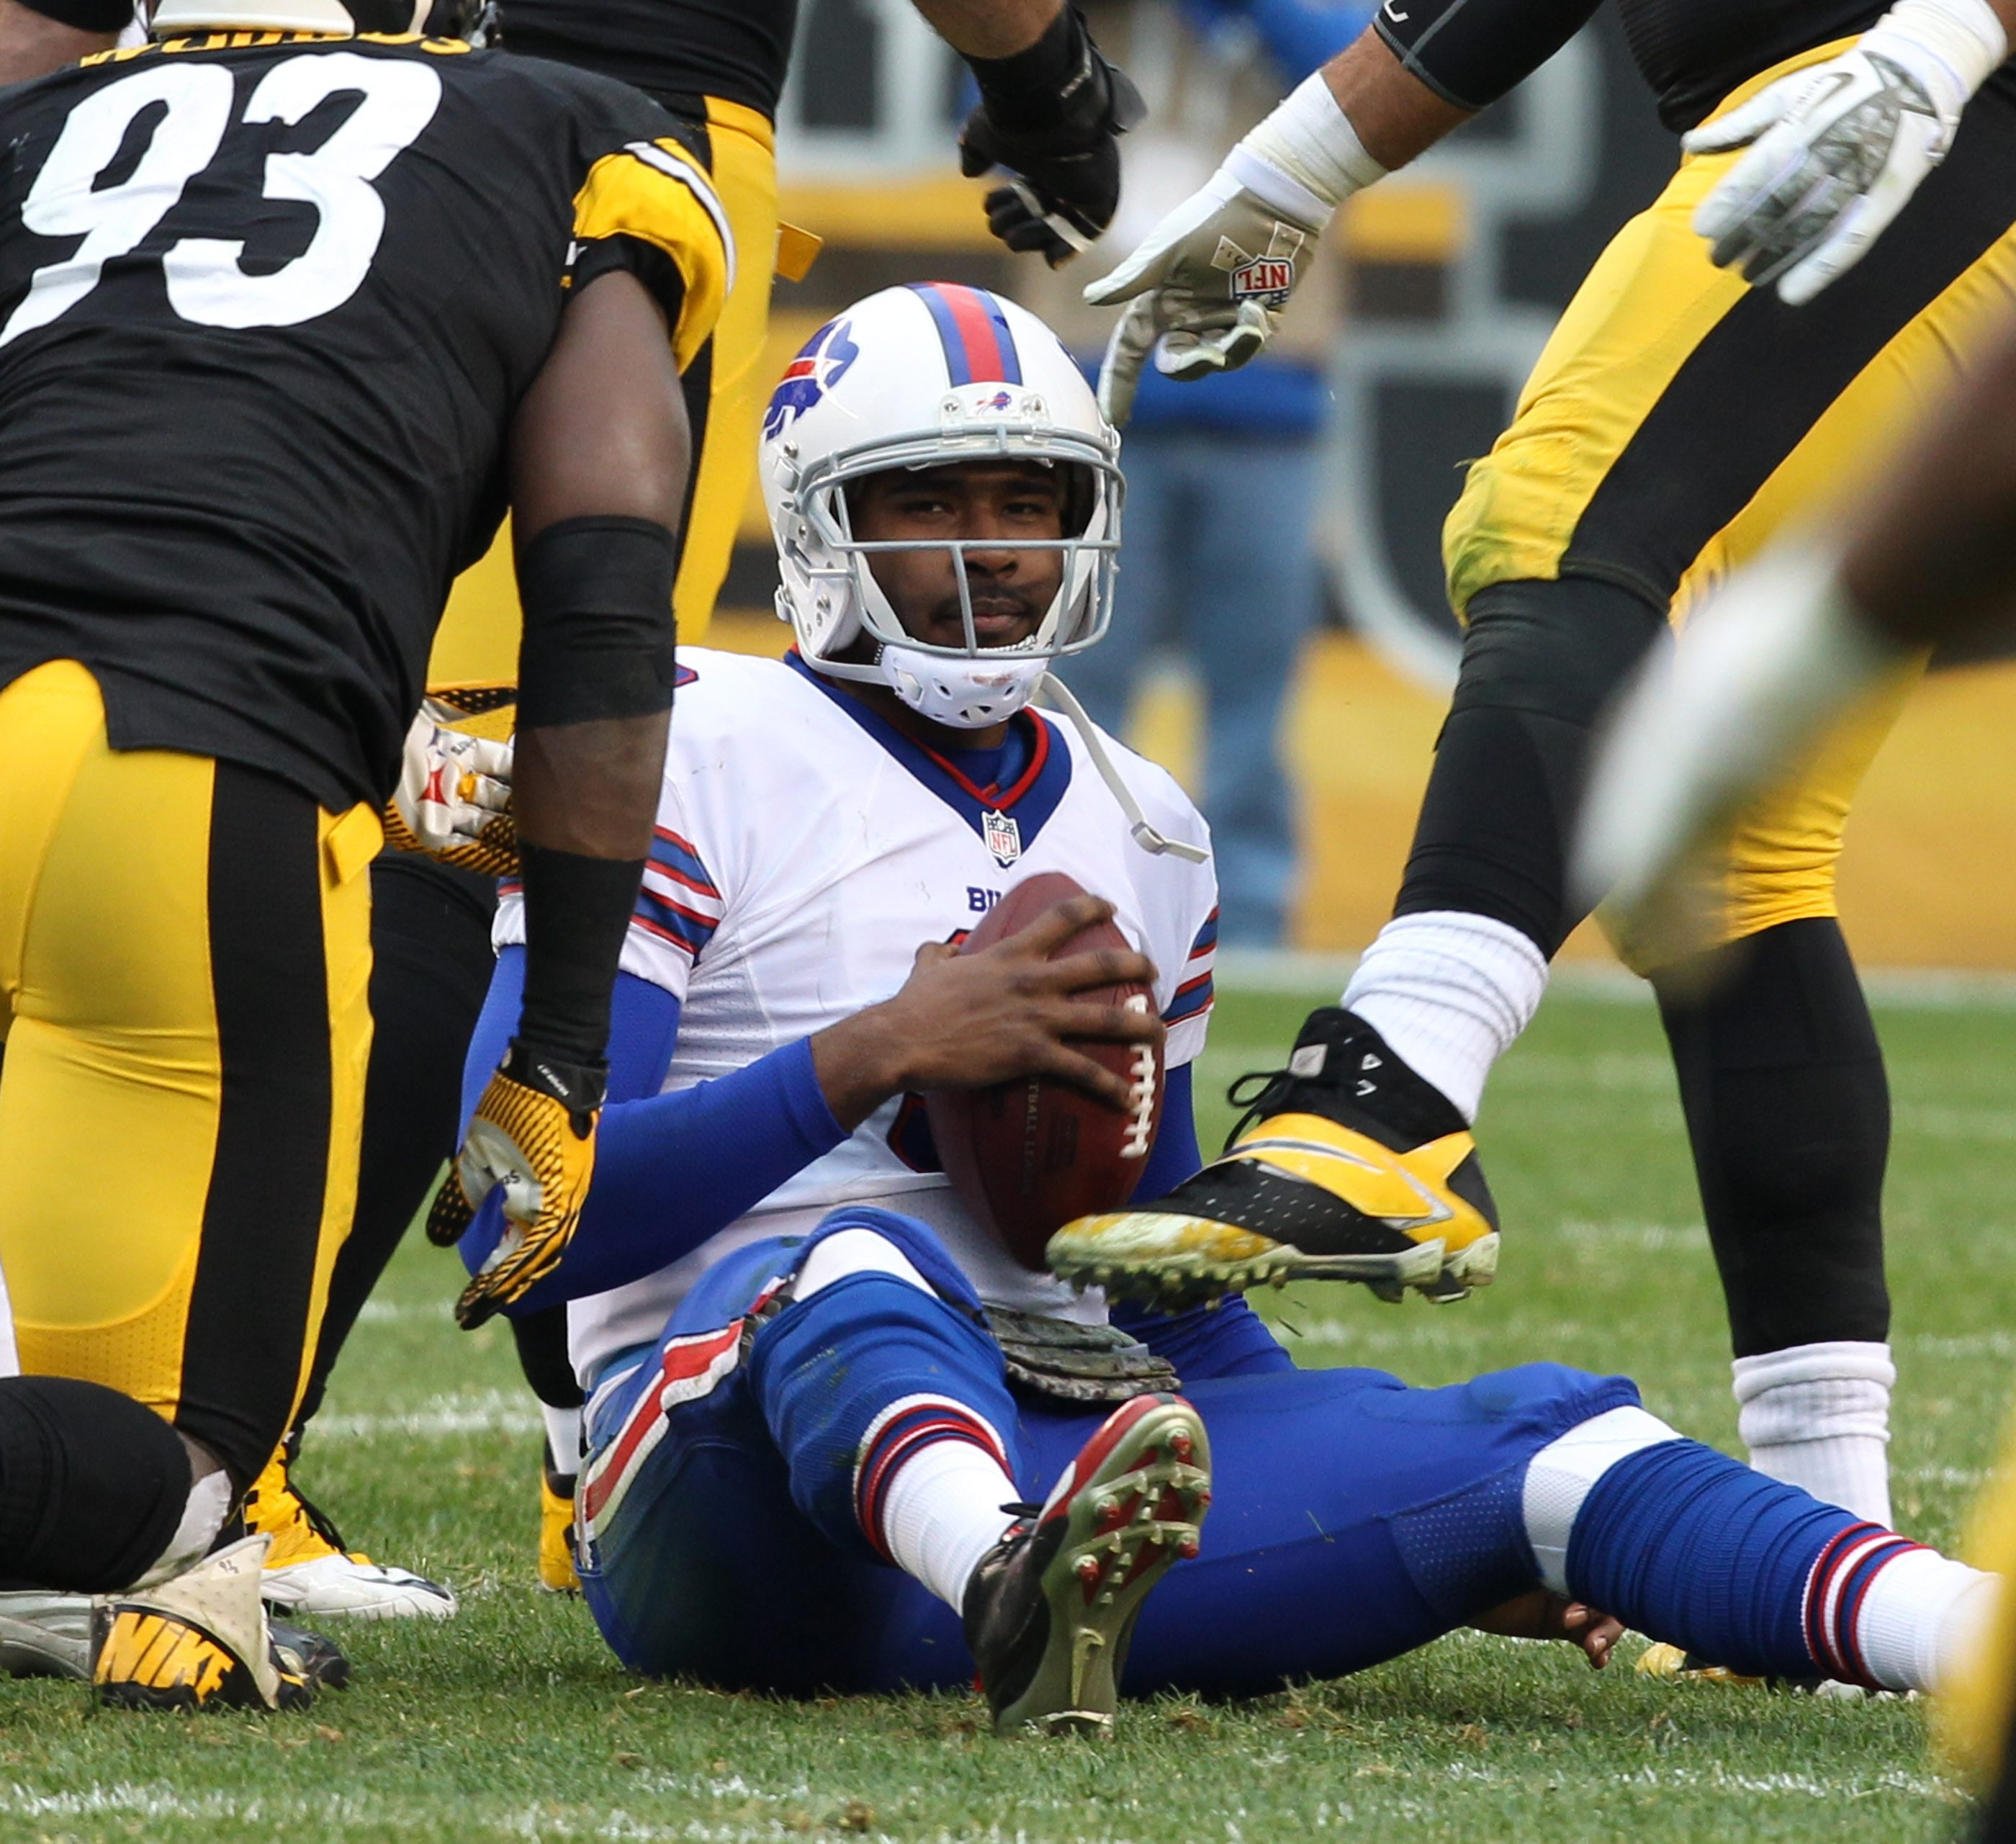 EJ Manuel after a sack during a loss at Pittsburgh in 2013. The Steelers visit Buffalo this year in Week 14.